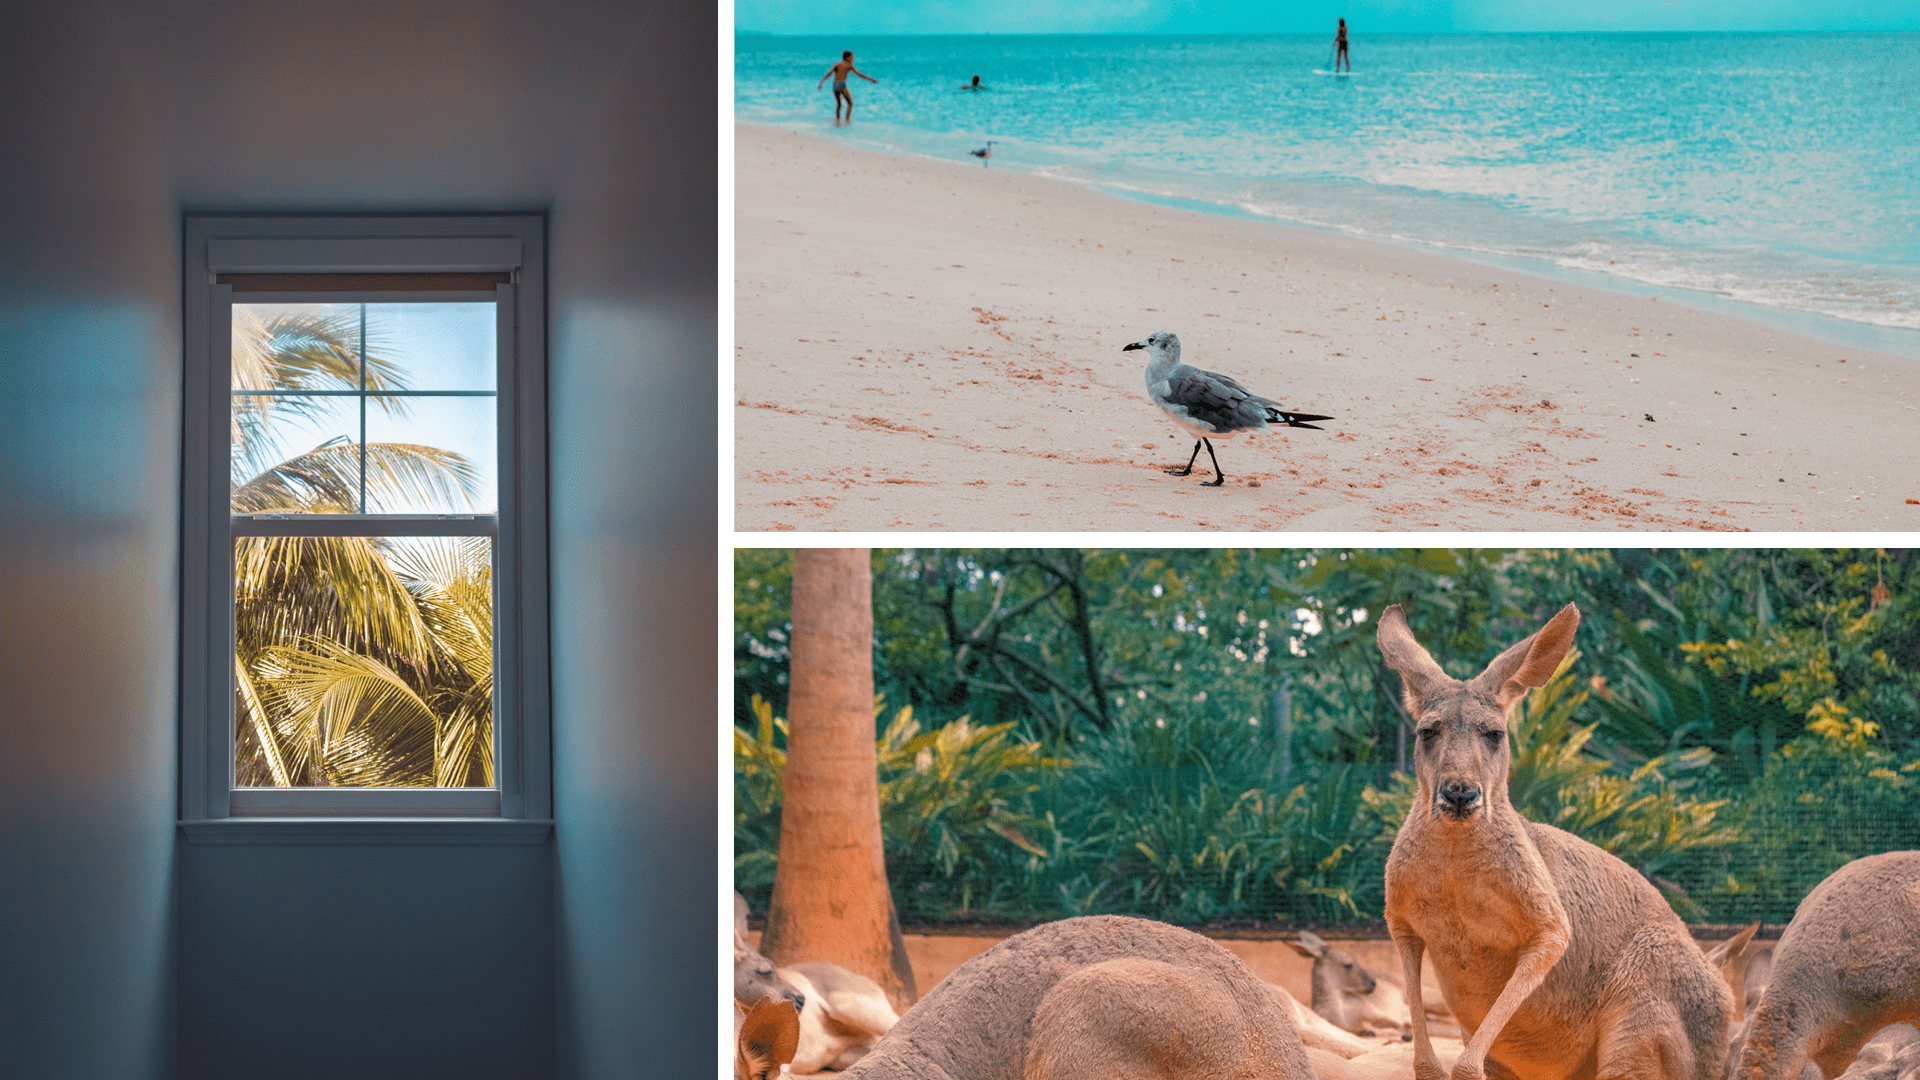 3 photographs from Florida, an open window, a seagull on a beach and a kangaroo.